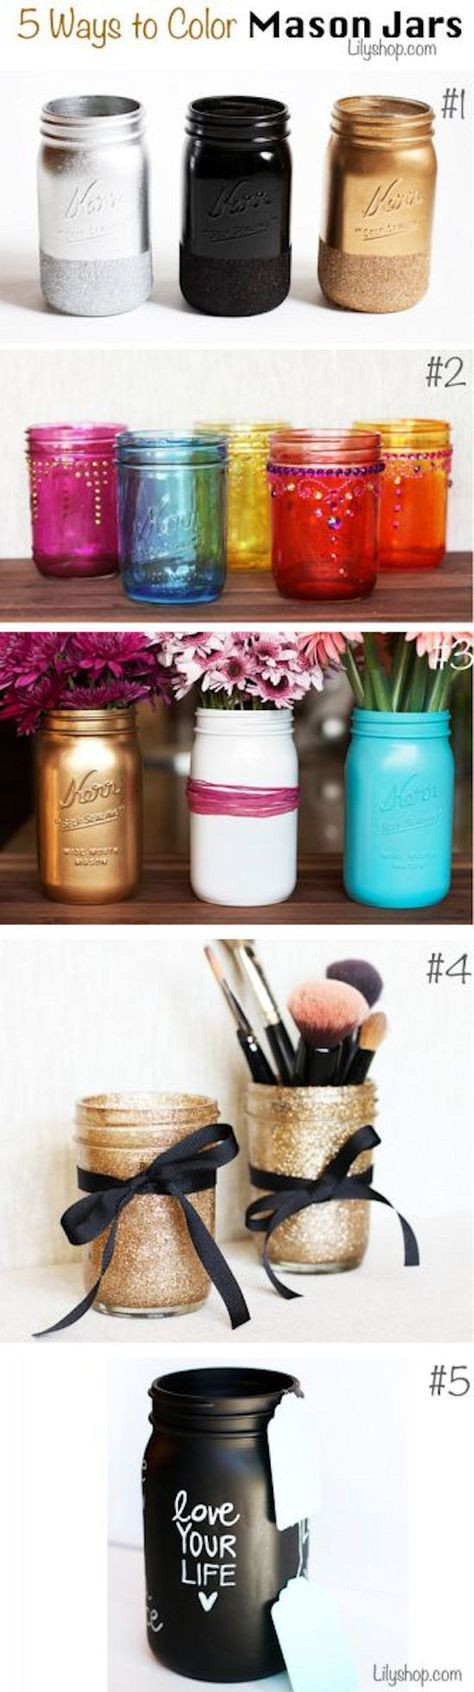 16 Lovable What Size Mason Jar for Vase 2021 free download what size mason jar for vase of 5 ways to color mason jars pictures photos and images for facebook with regard to 5 ways to color mason jars pictures photos and images for facebook tumblr pi